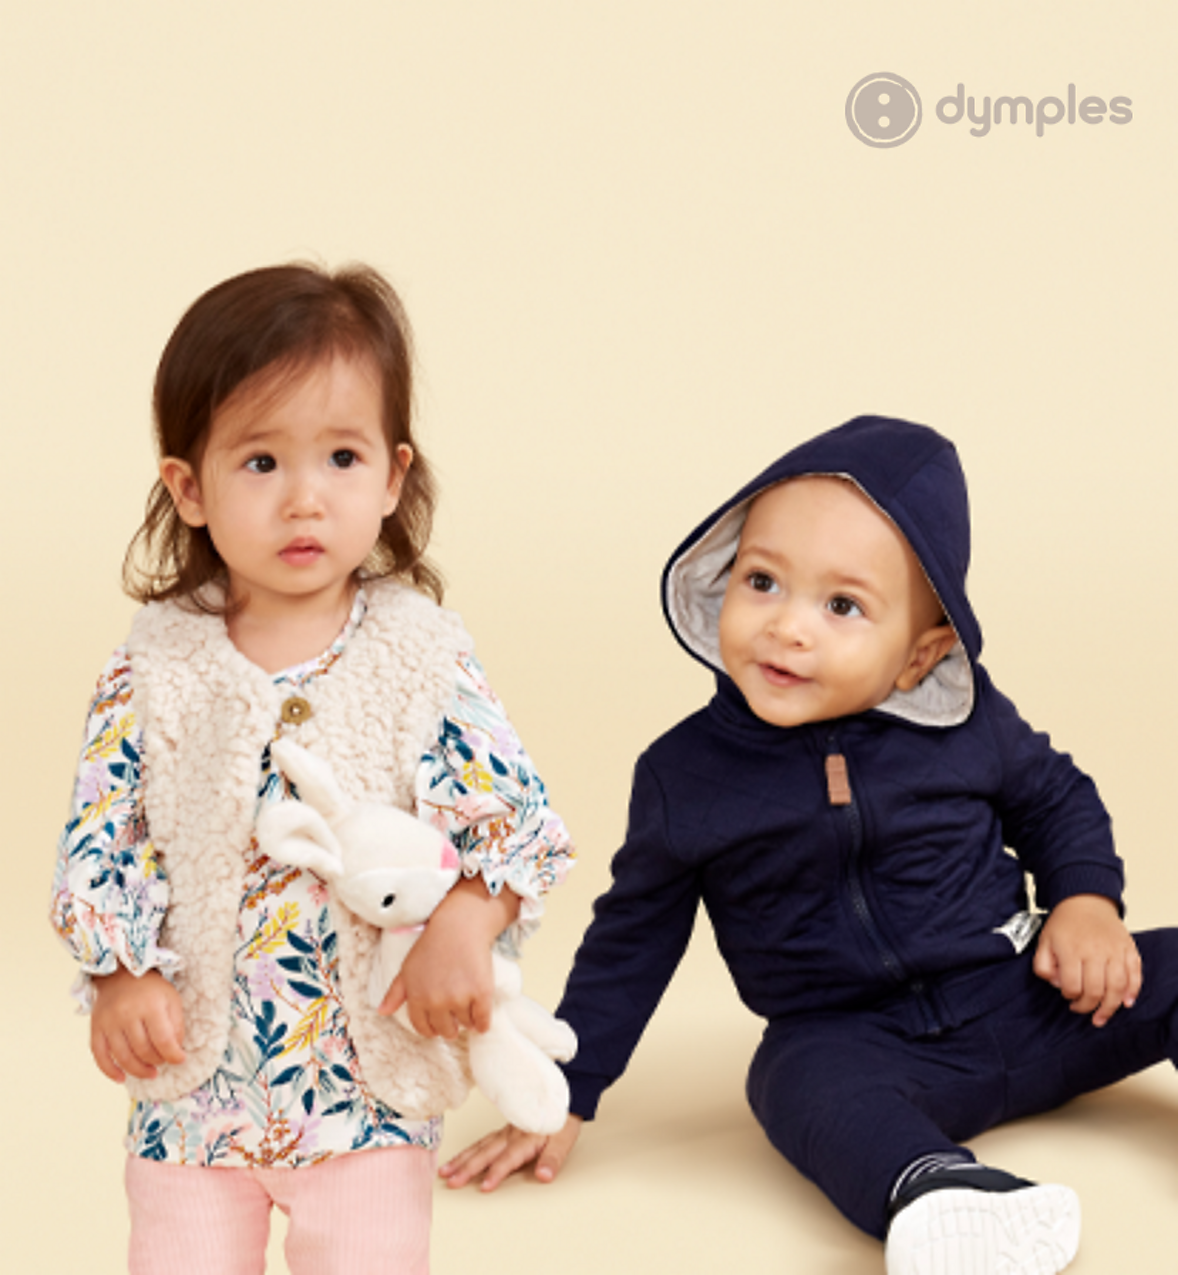 dymples baby girl and baby boy clothes